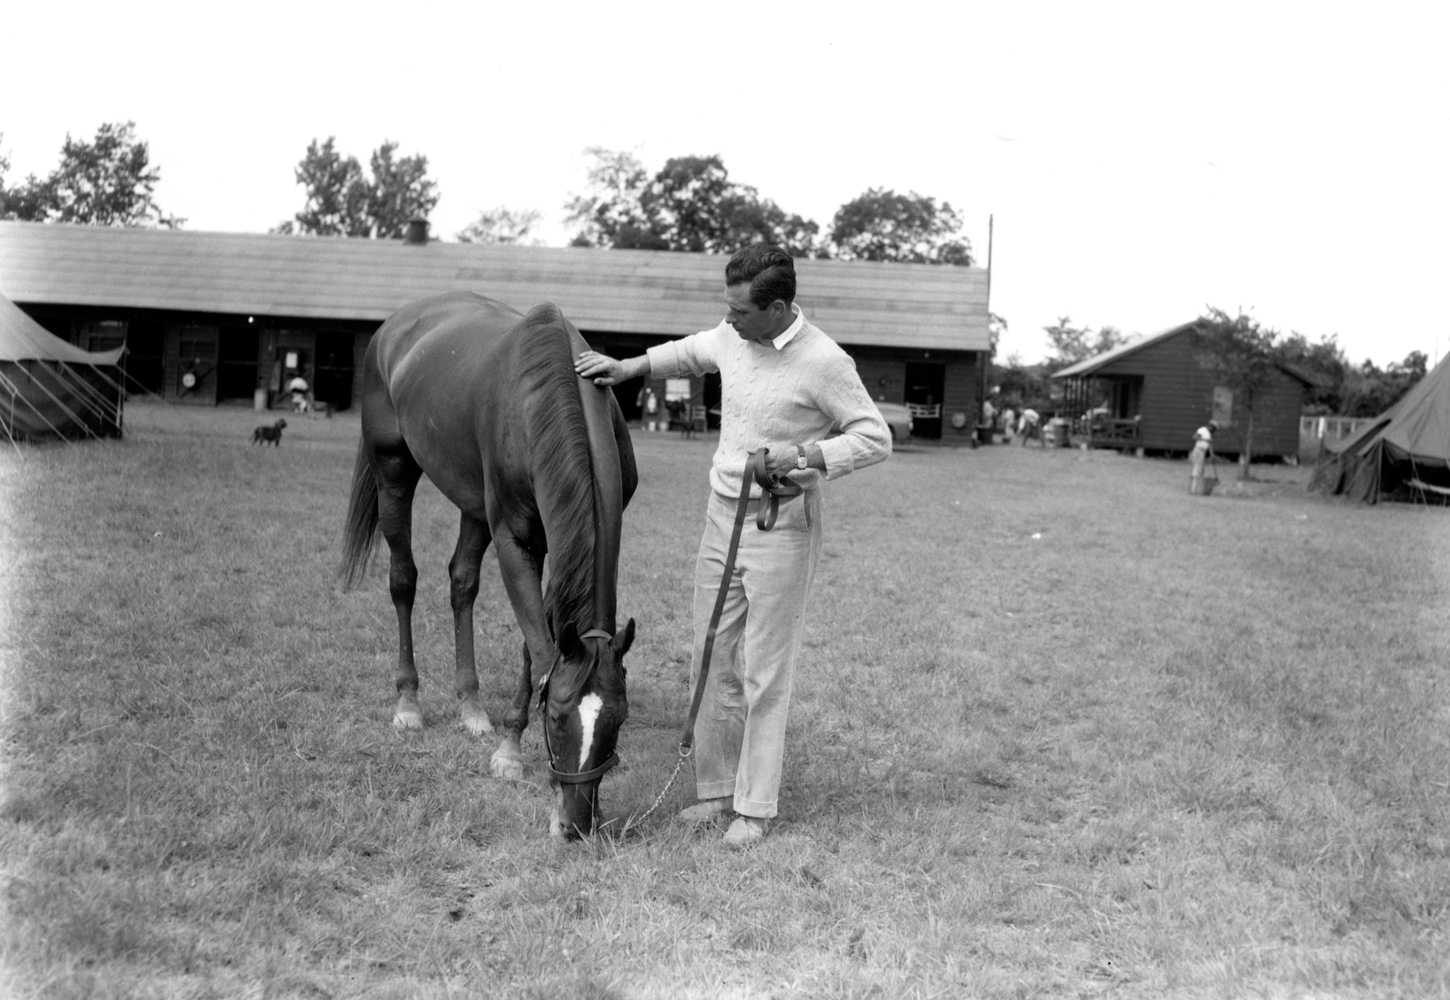 D.M. Smithwick and Neji at Saratoga, August 1958 (Keeneland Library Morgan Collection/Museum Collection)